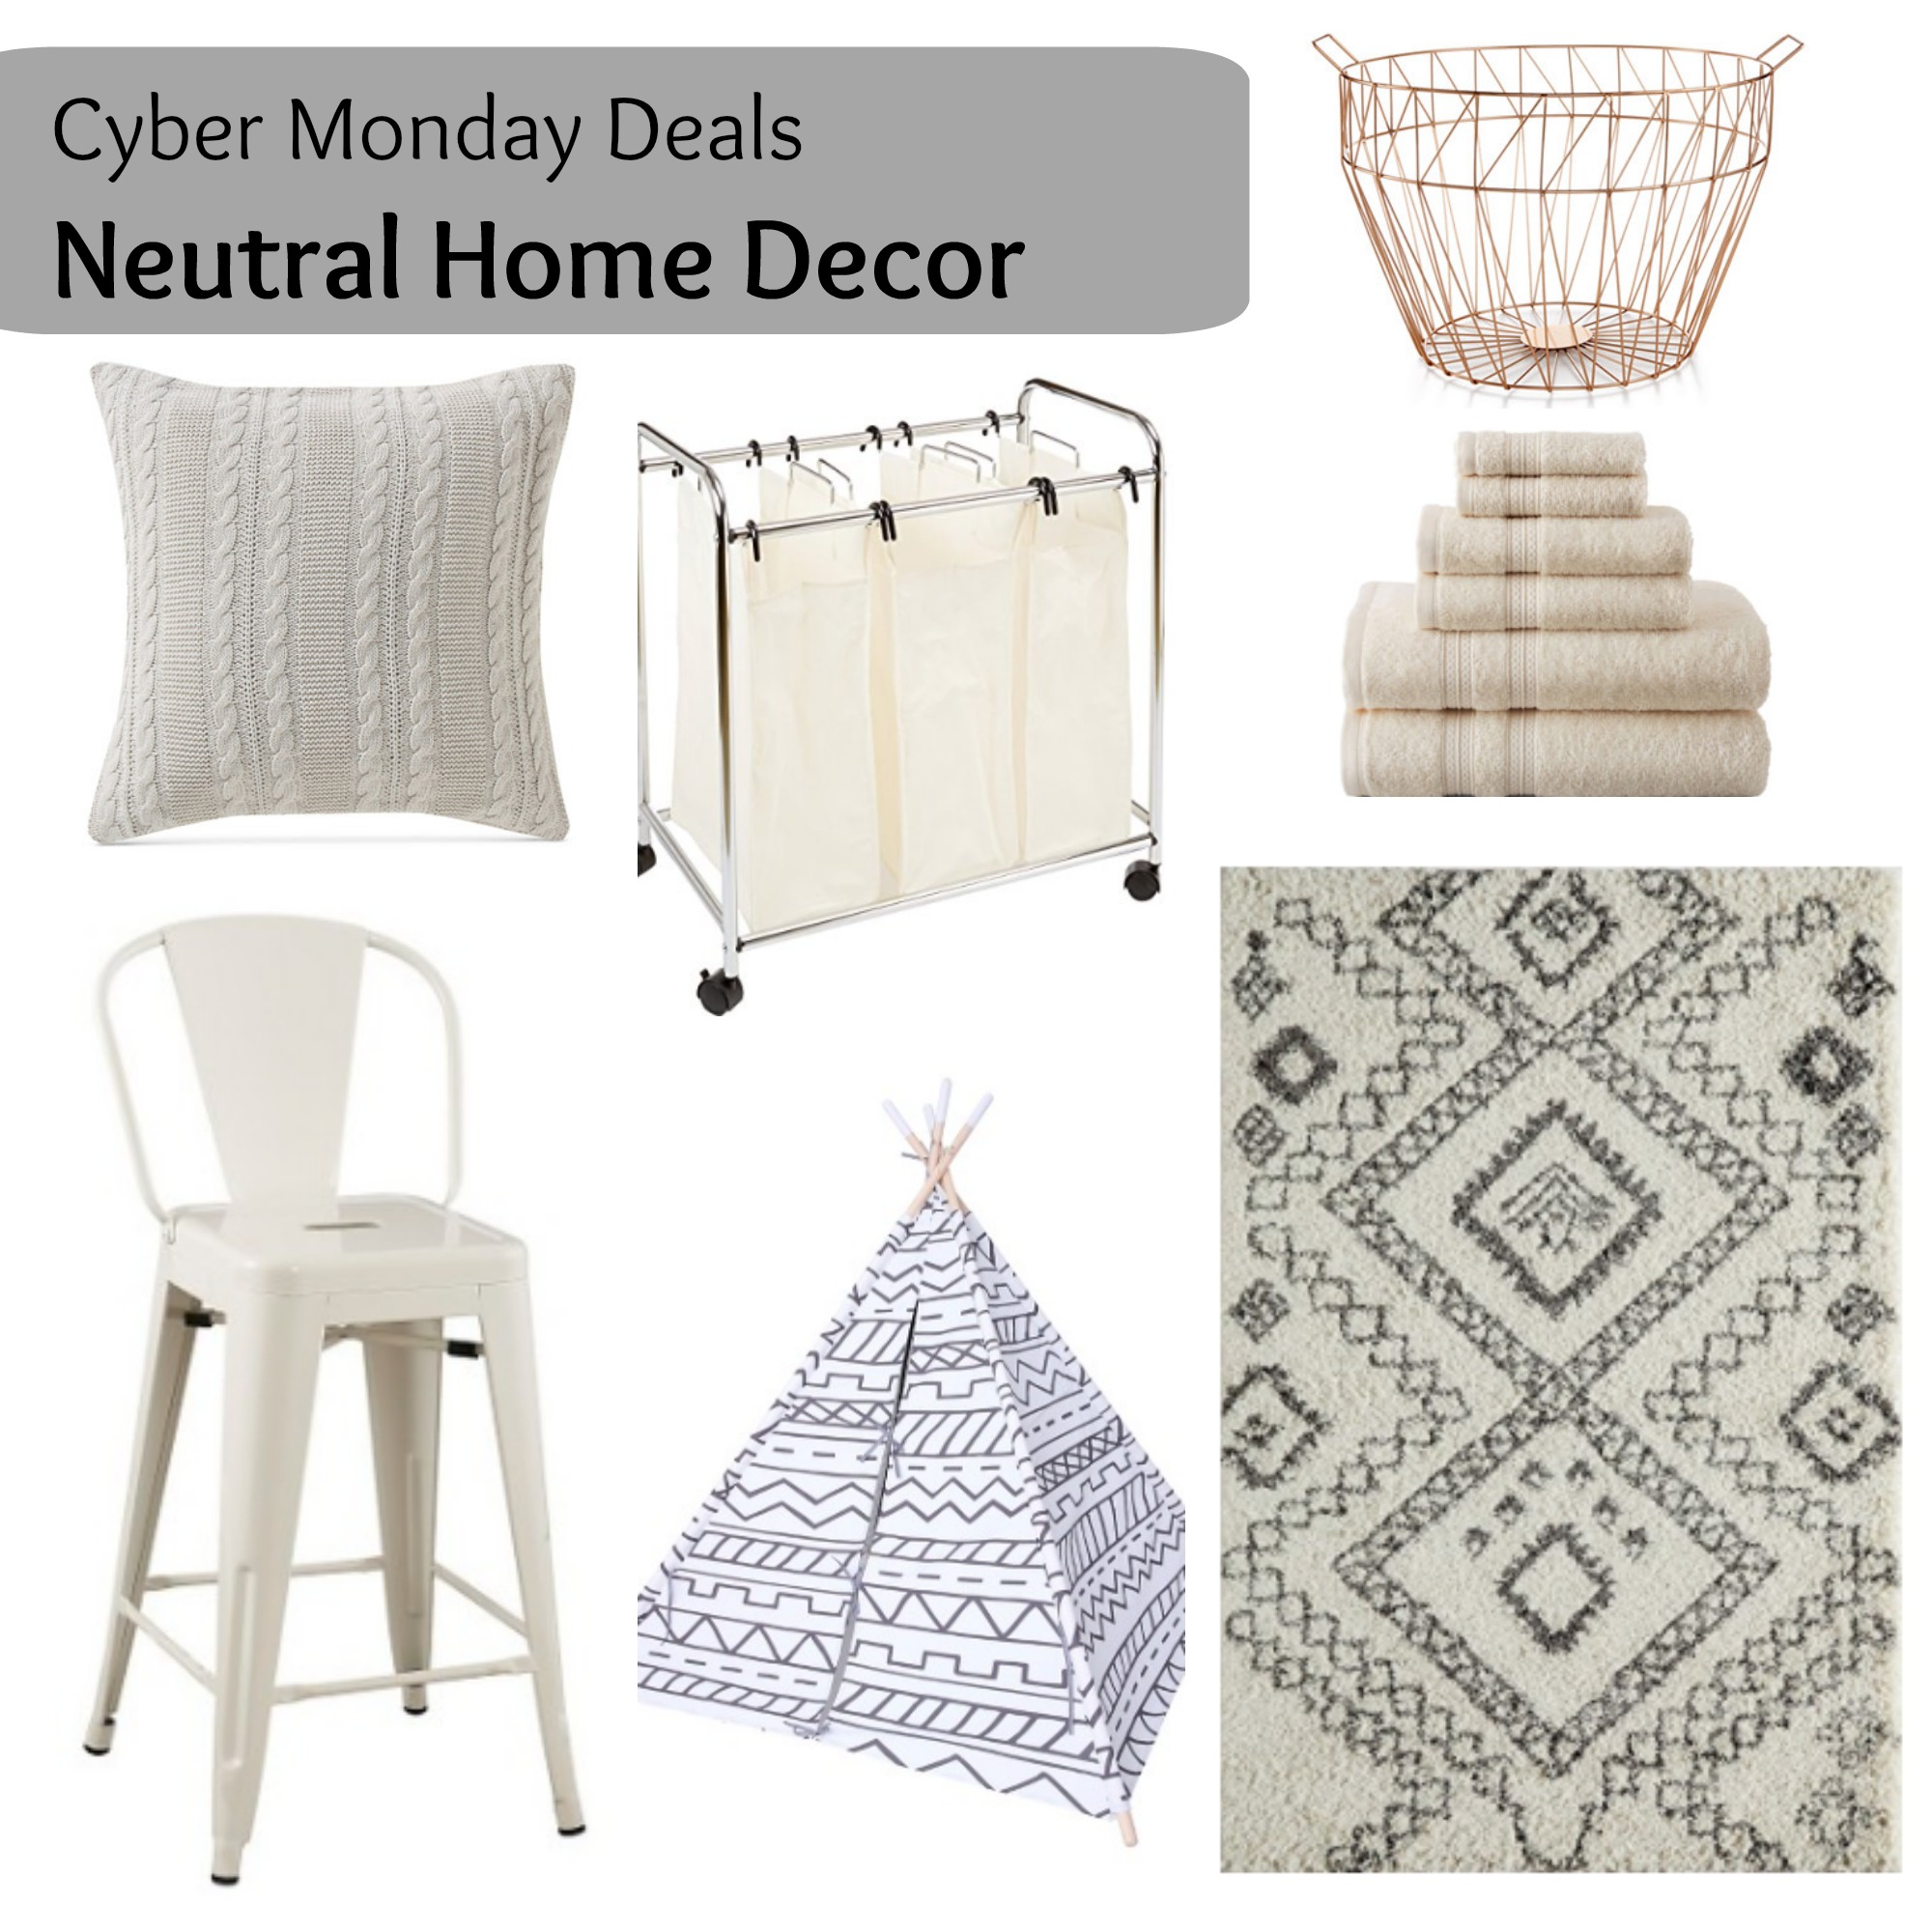 Cyber Monday Home Deals